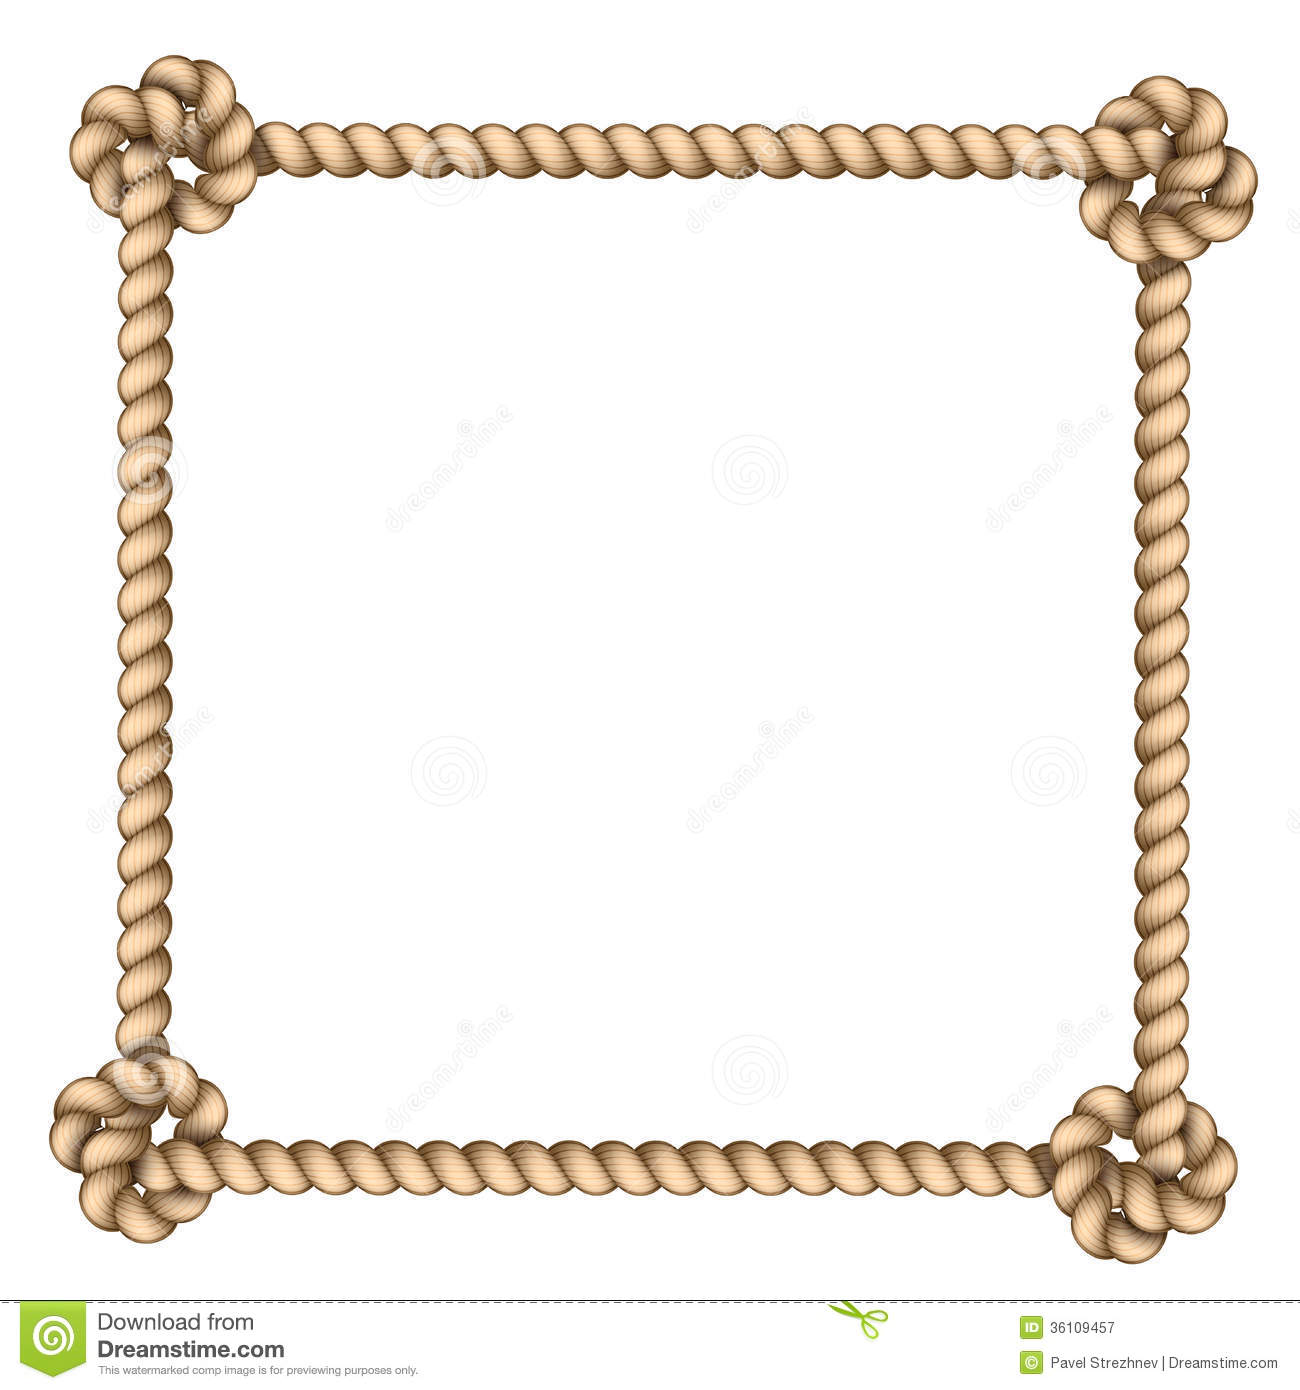 Rope Frame Royalty Free Stock Photography  Image: 36109457